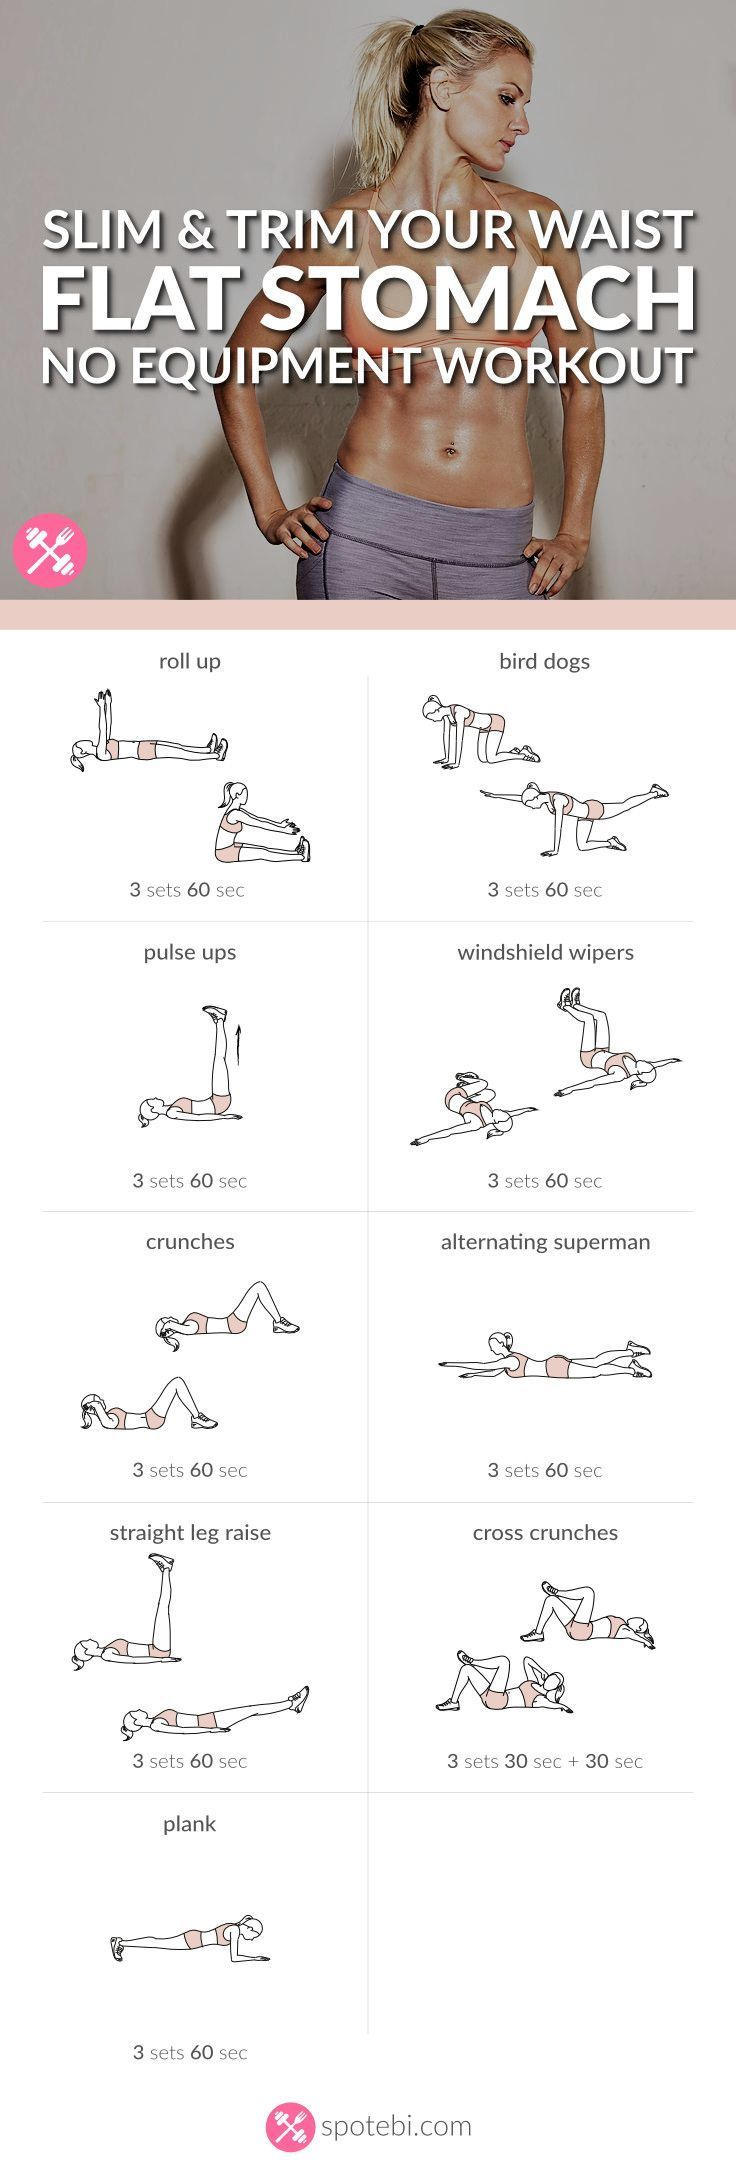 Want to easily whip your tummy into shape? Try this at home flat stomach workout for women, to sculpt your abs in no time, and get a slim, toned and trim belly. www.spotebi.com/…